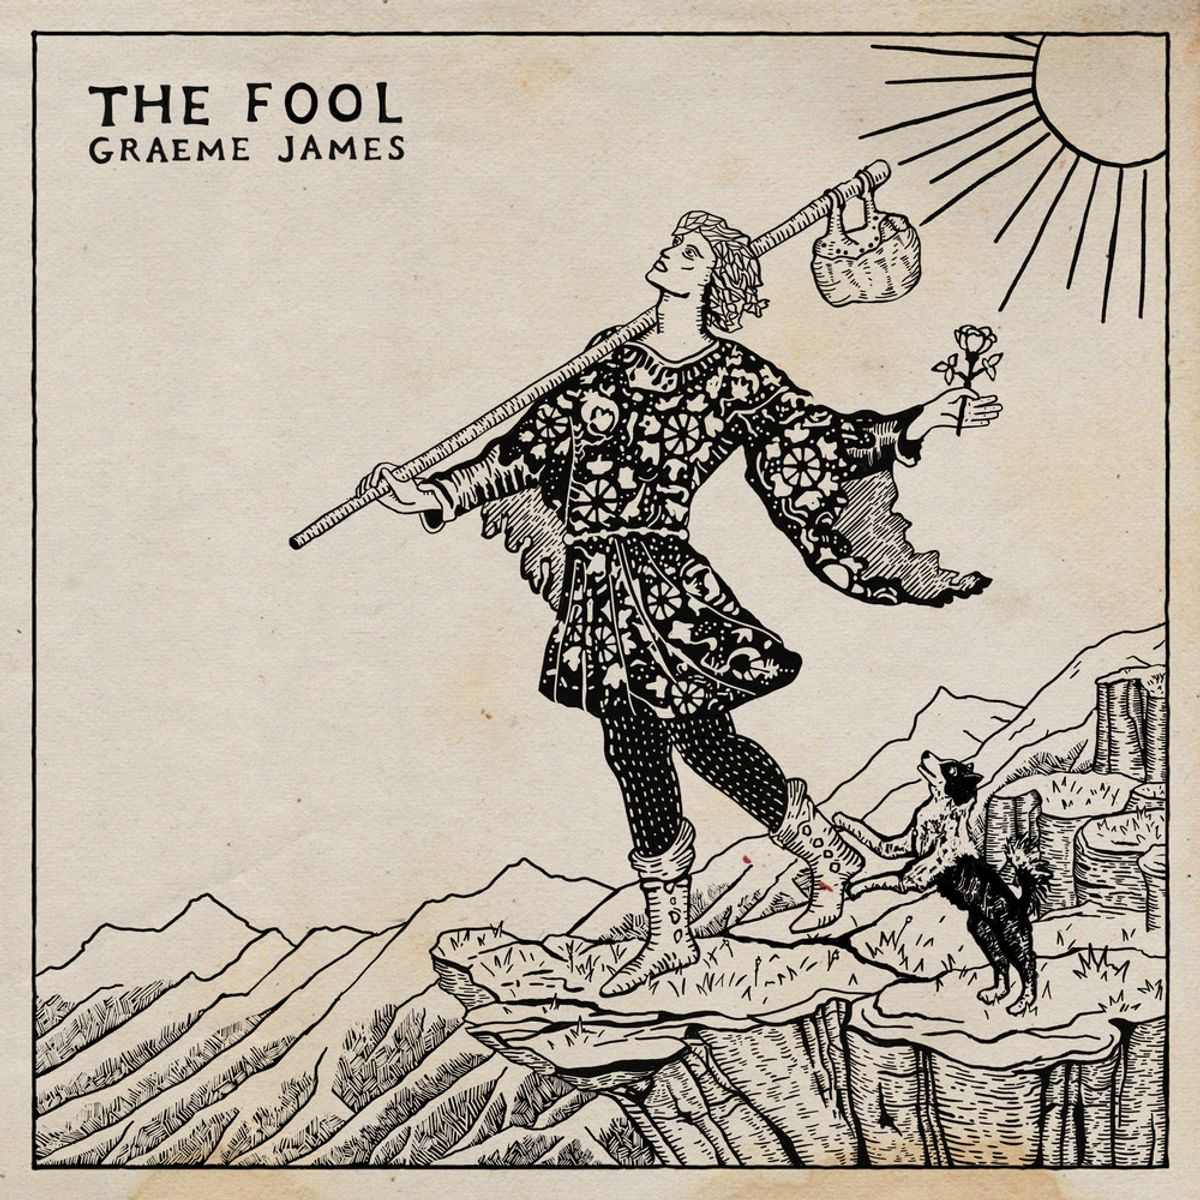 Graeme James - The Fool